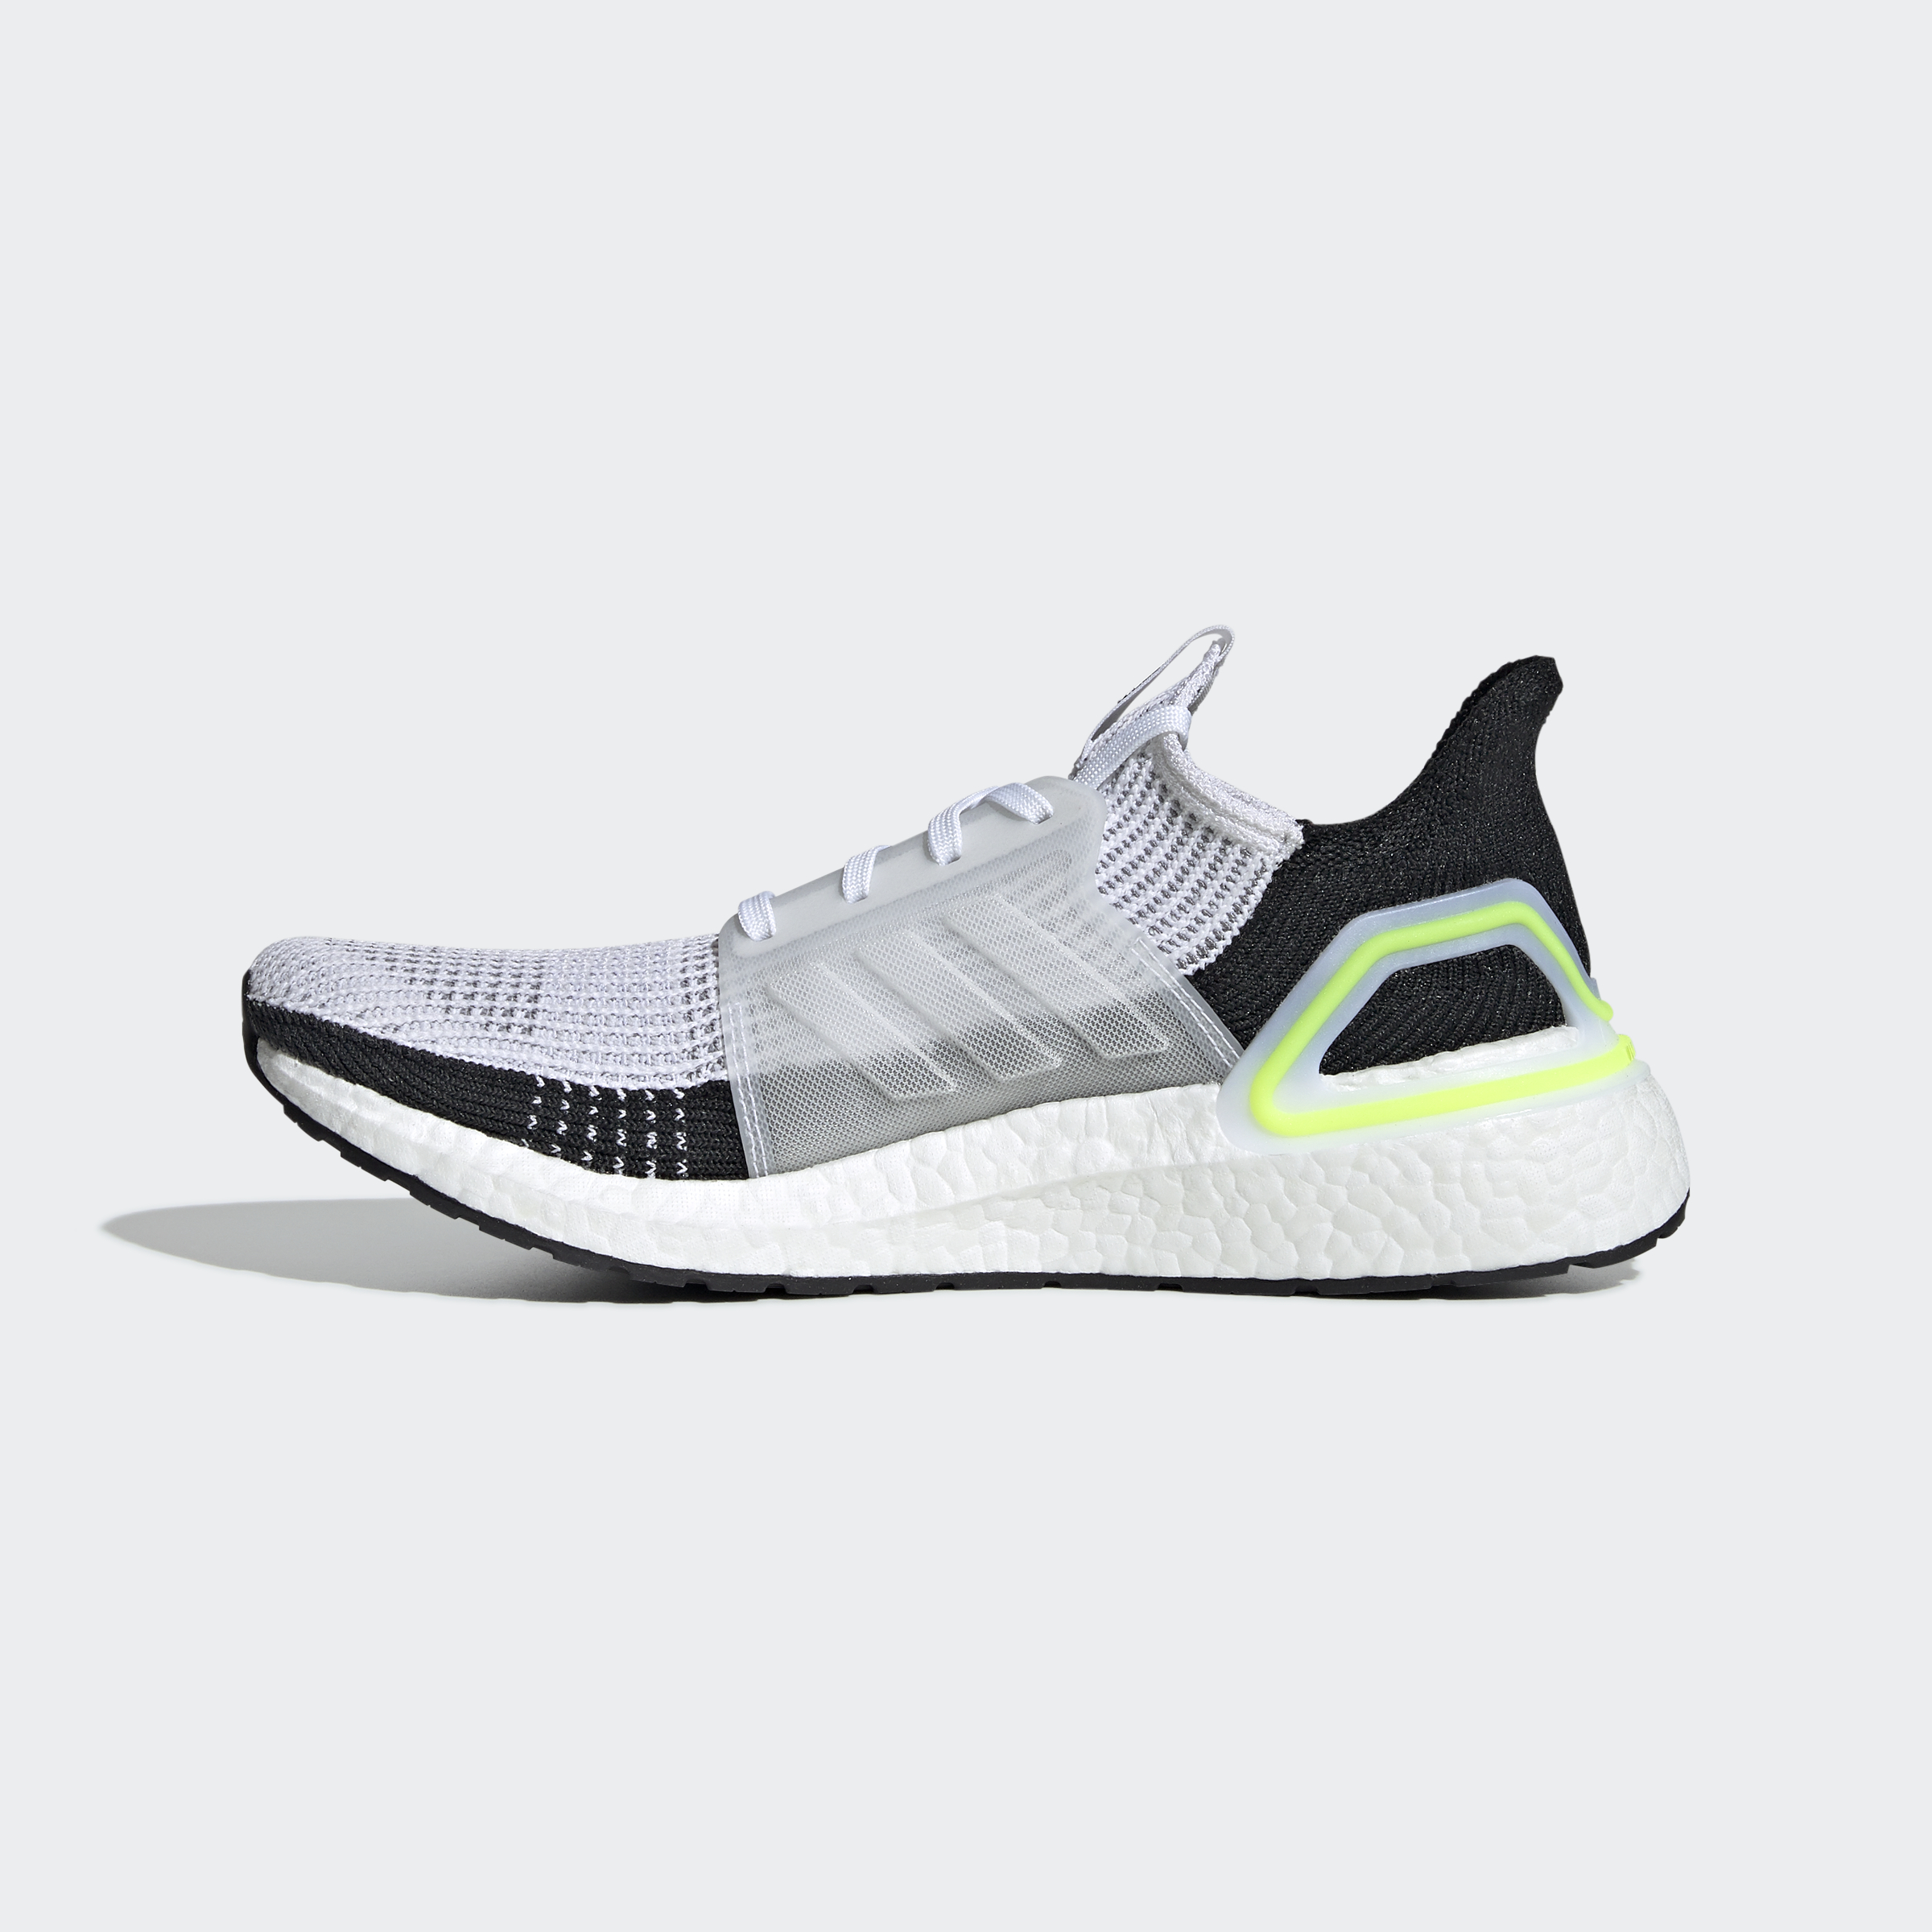 adidas-Ultraboost-19-Shoes-Athletic-amp-Sneakers thumbnail 43